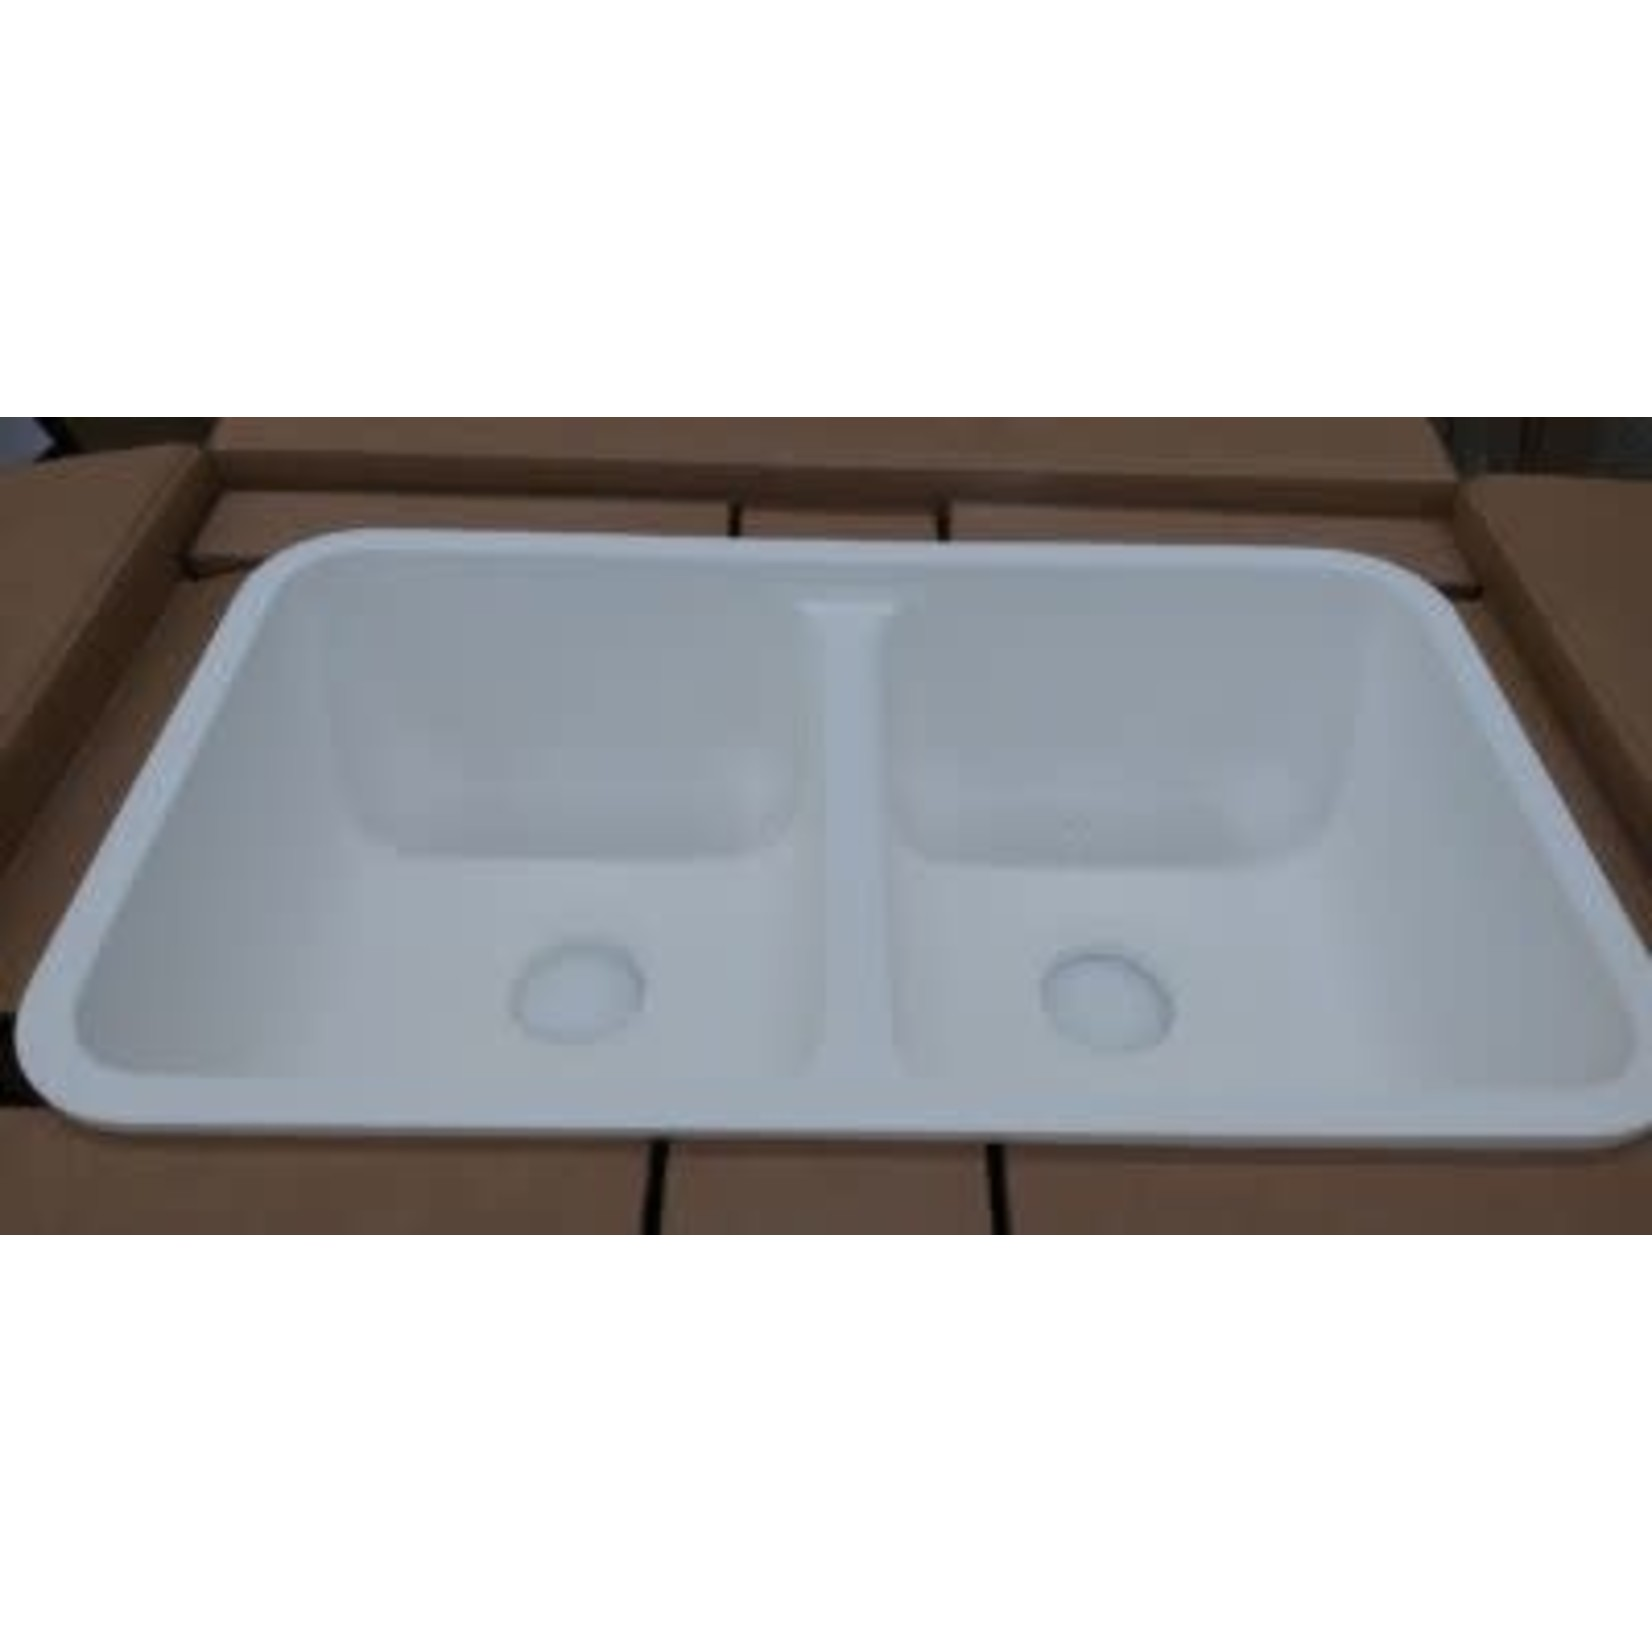 2801  Wilsonart Double Bowl Solid Surface Sink